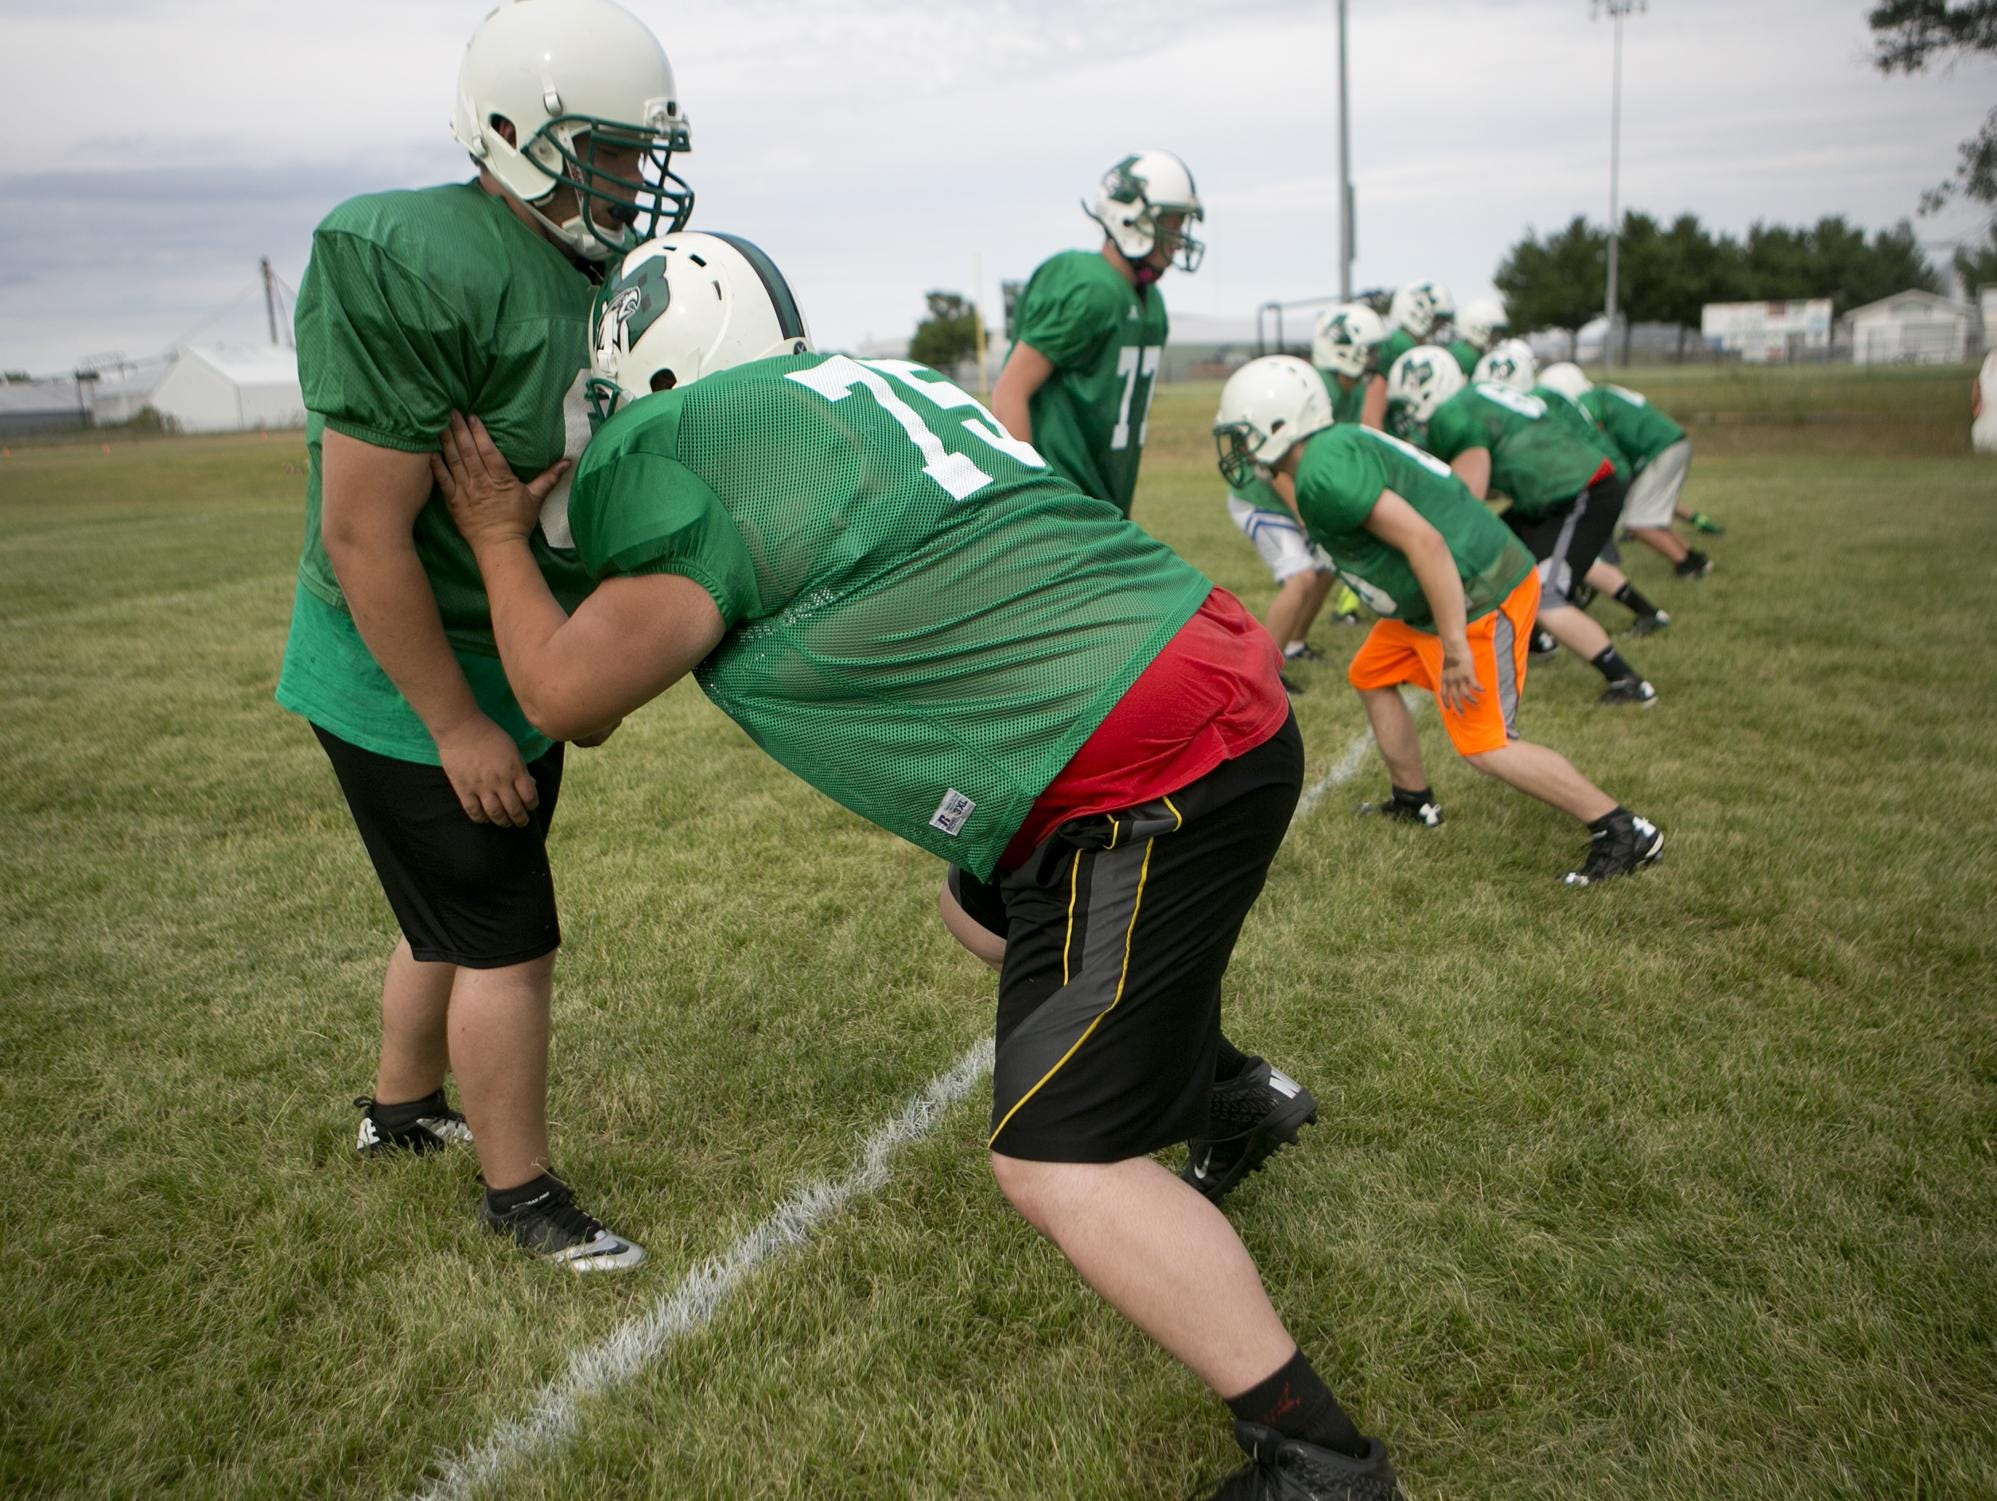 Linemen go through drills during Almond-Bancroft football practice on Thursday.